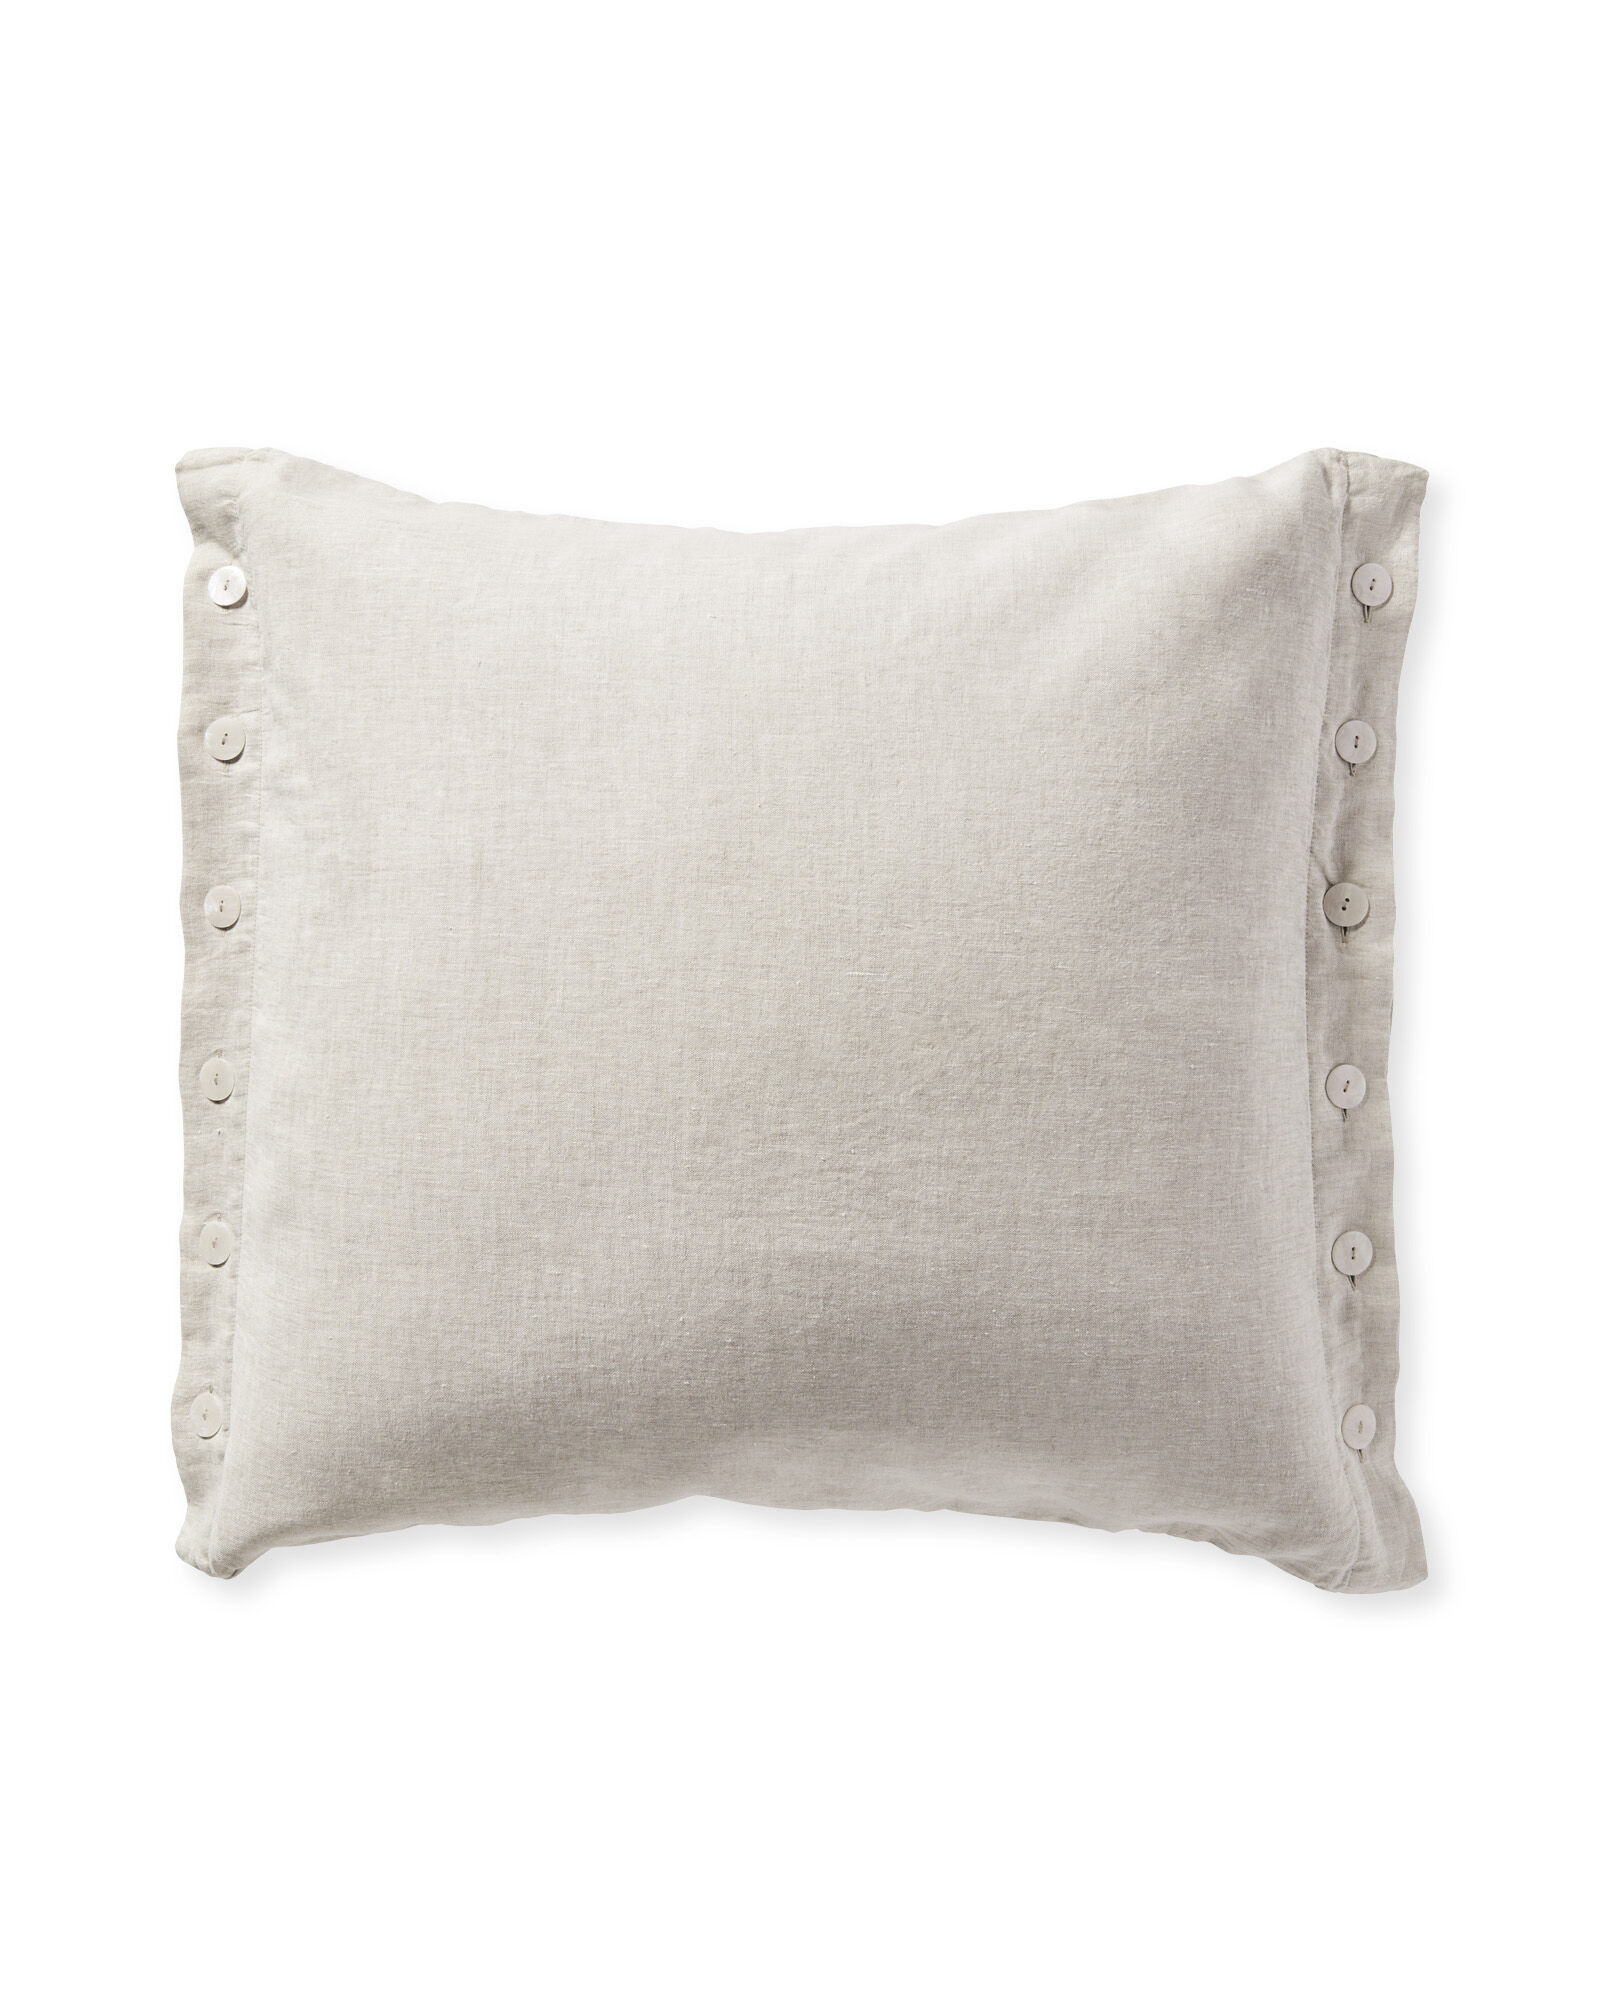 Boothbay Pillow Cover, Flax